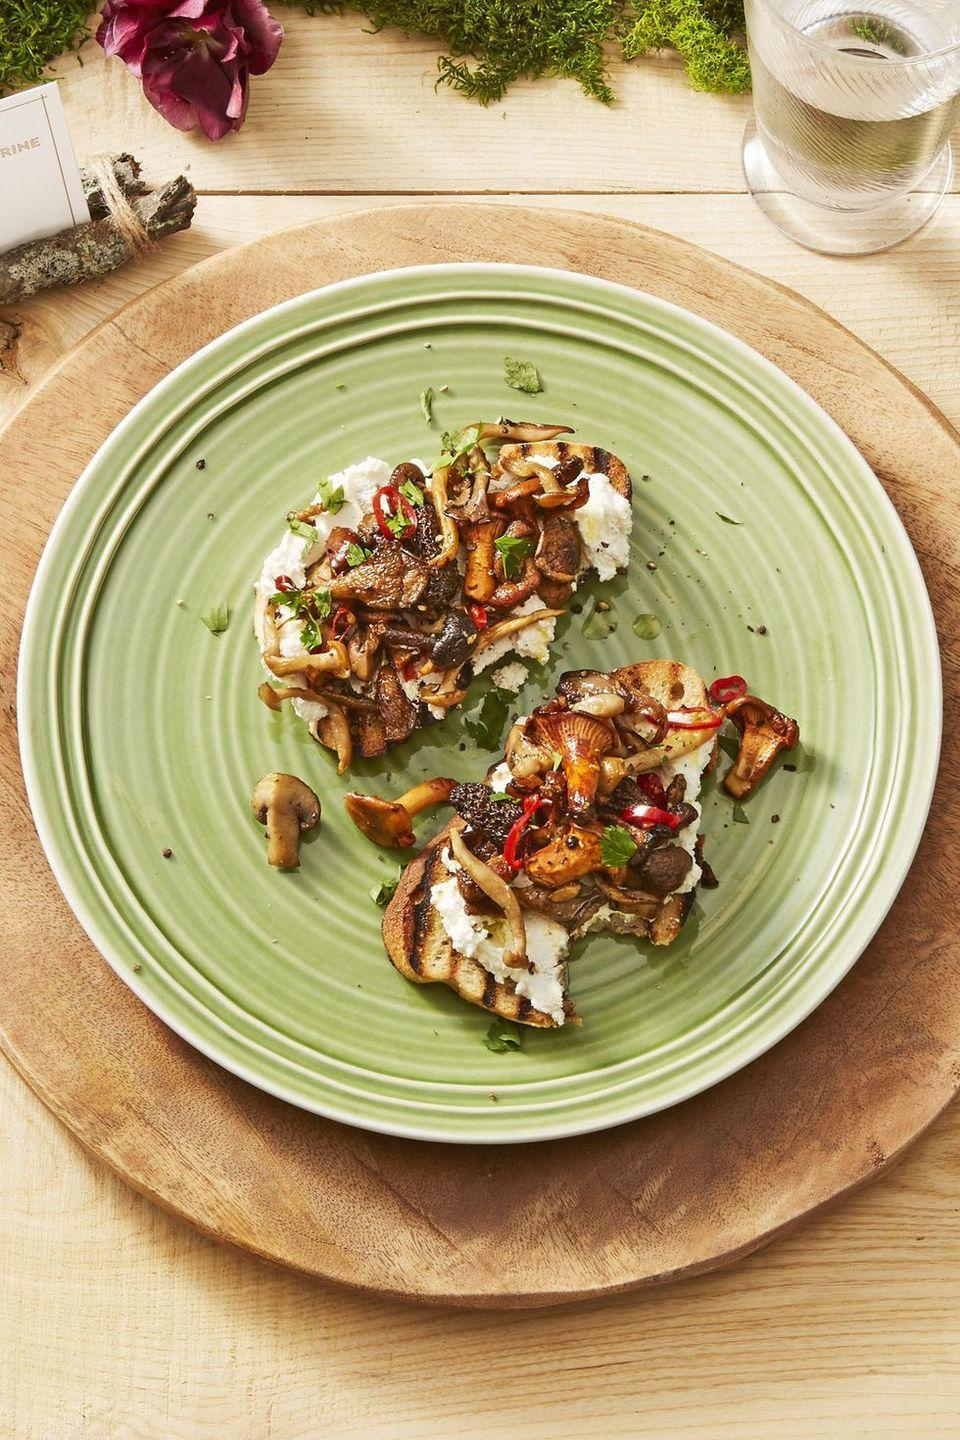 "<p>Red chile adds just the right amount of spice to balance the earthy mushrooms and creamy cheese.</p><p><em><a href=""https://www.goodhousekeeping.com/food-recipes/easy/a24181244/wild-mushroom-toasts-recipe/"" rel=""nofollow noopener"" target=""_blank"" data-ylk=""slk:Get the recipe for Wild Mushroom Toasts »"" class=""link rapid-noclick-resp"">Get the recipe for Wild Mushroom Toasts »</a></em></p>"